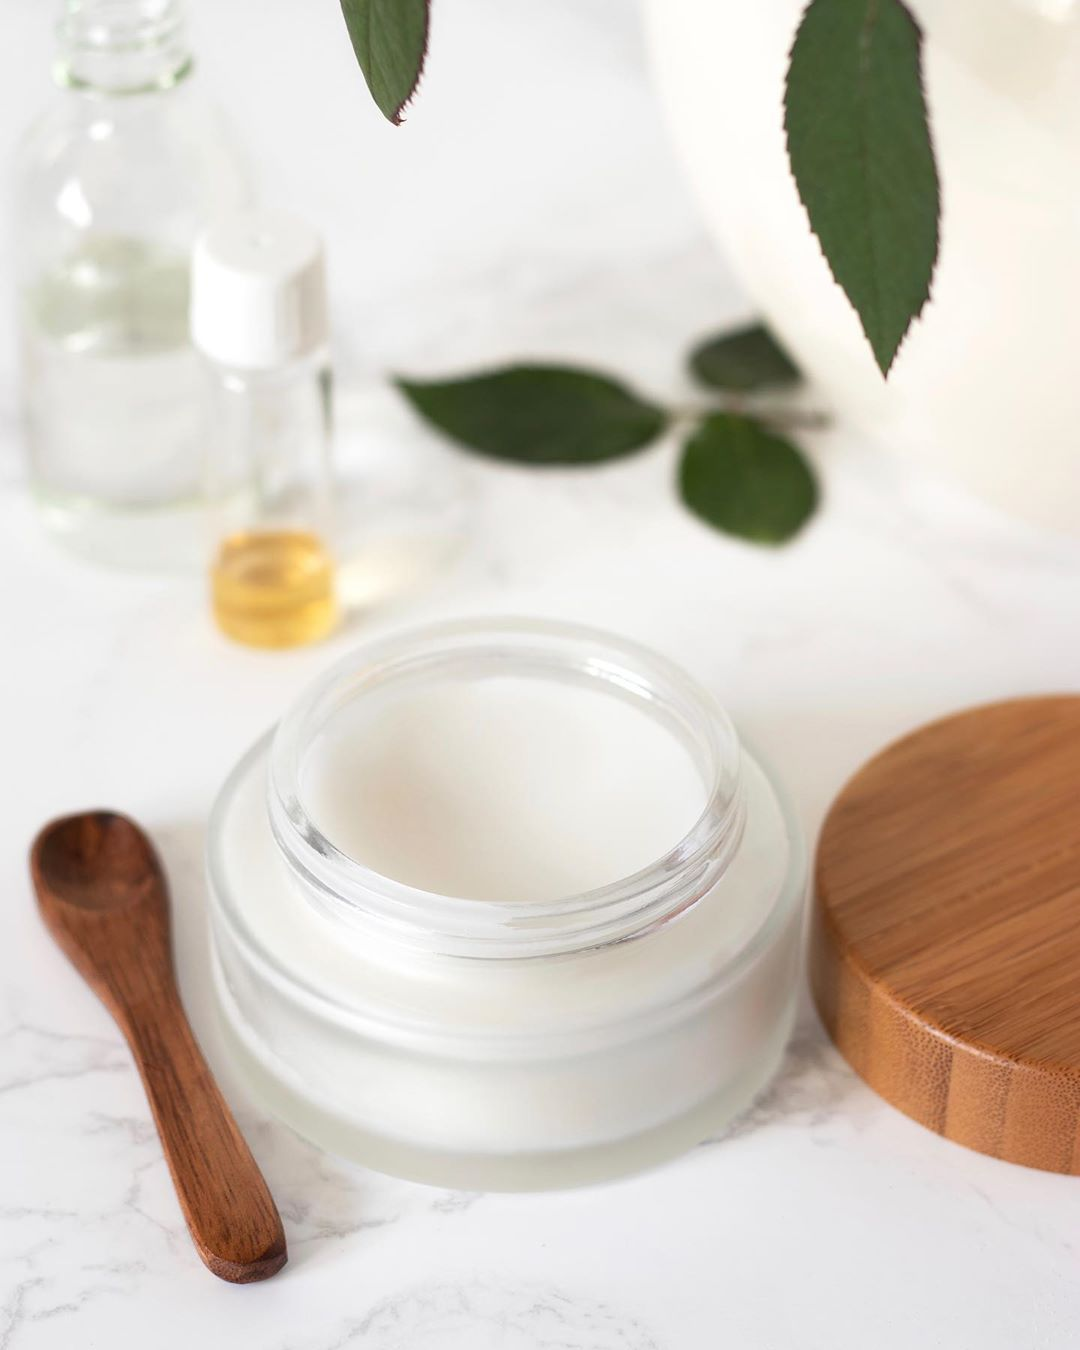 If youre a beauty connoisseur youve likely used a Korean Beauty product or two Our love for Korean Beauty inspired us to create a DIY overnight face mask that helps preve...